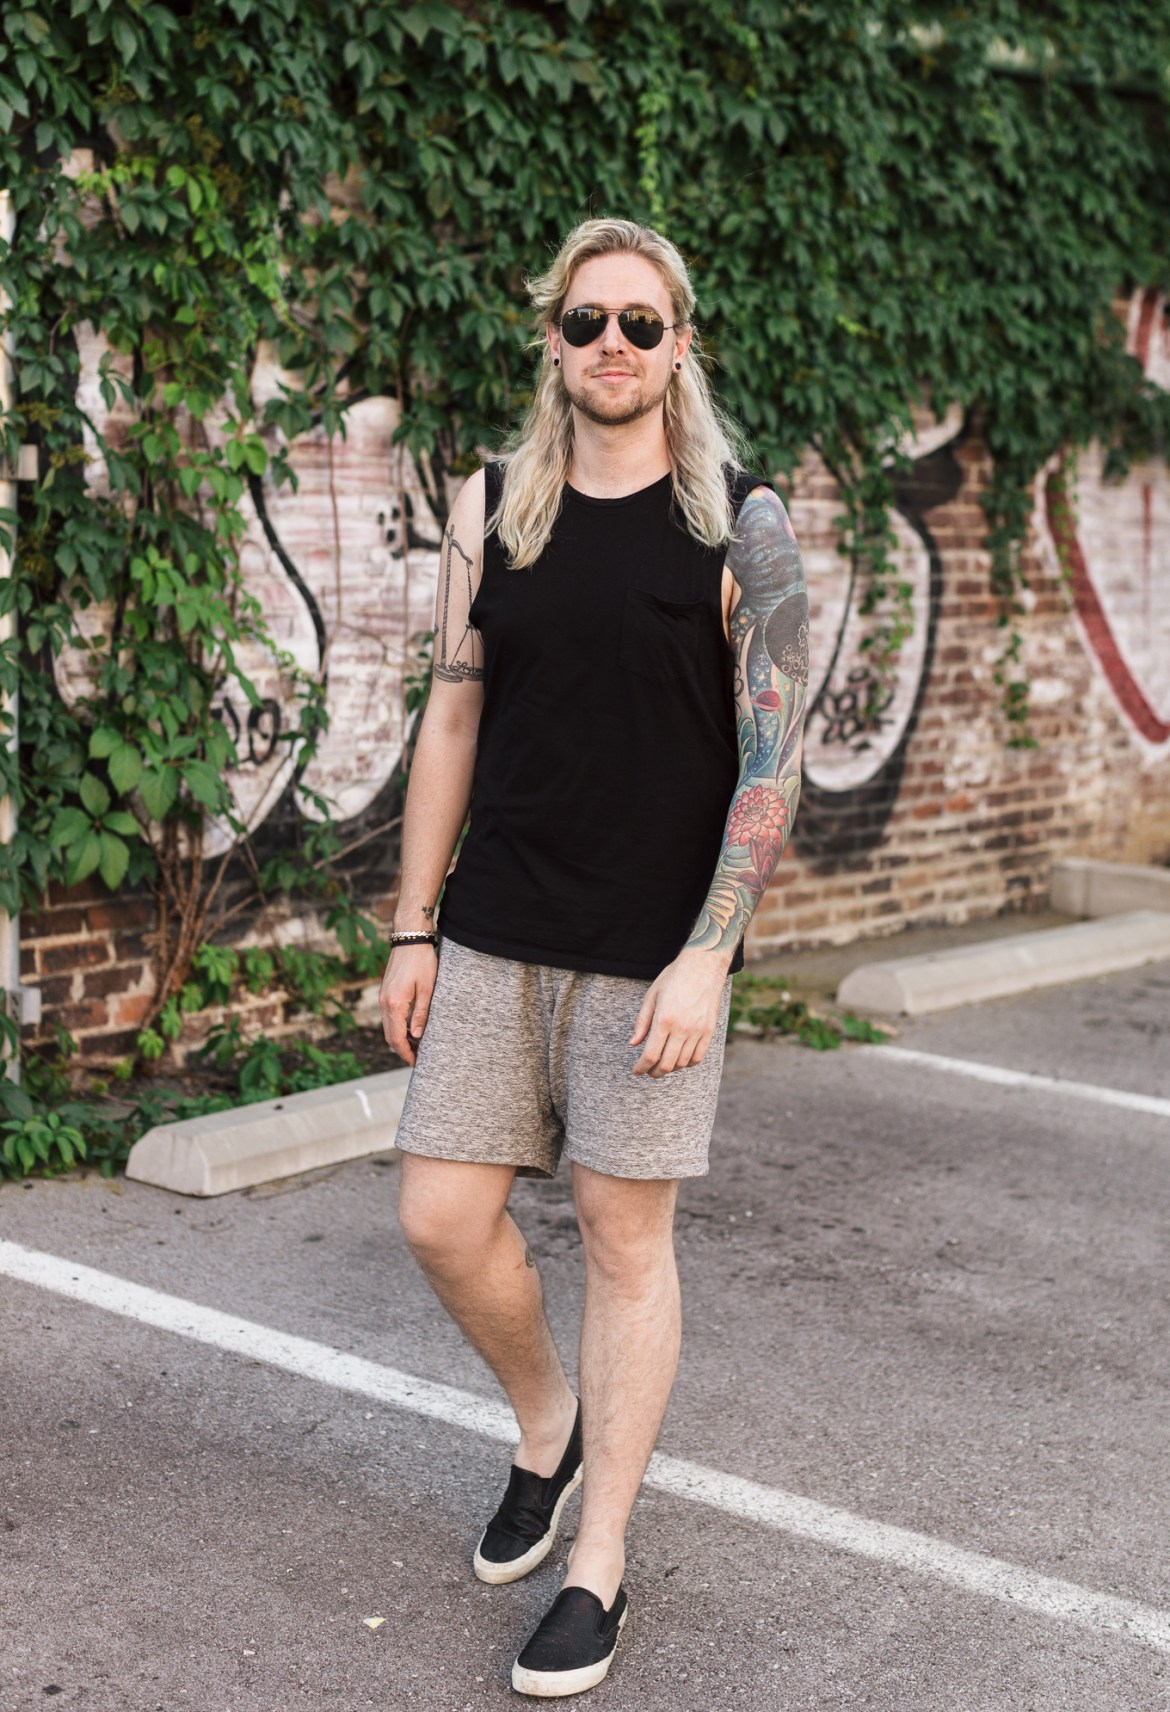 #coolincotton, discover cotton, why to wear cotton, how to stay cool in the summer, lifestyle blog